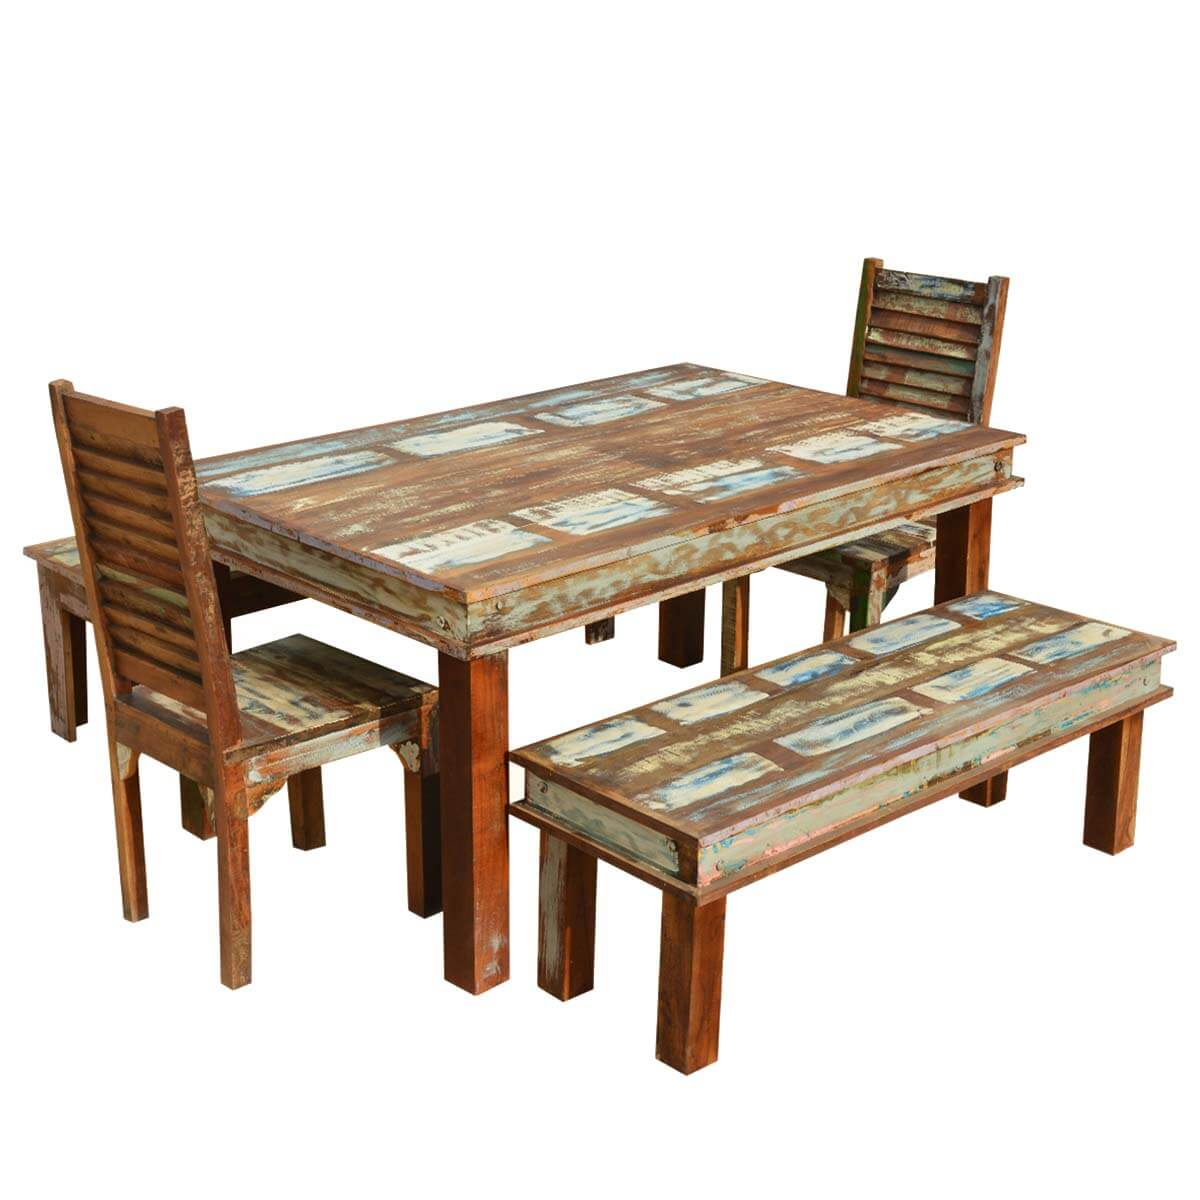 Sierra reclaimed wood furniture dining table with chairs